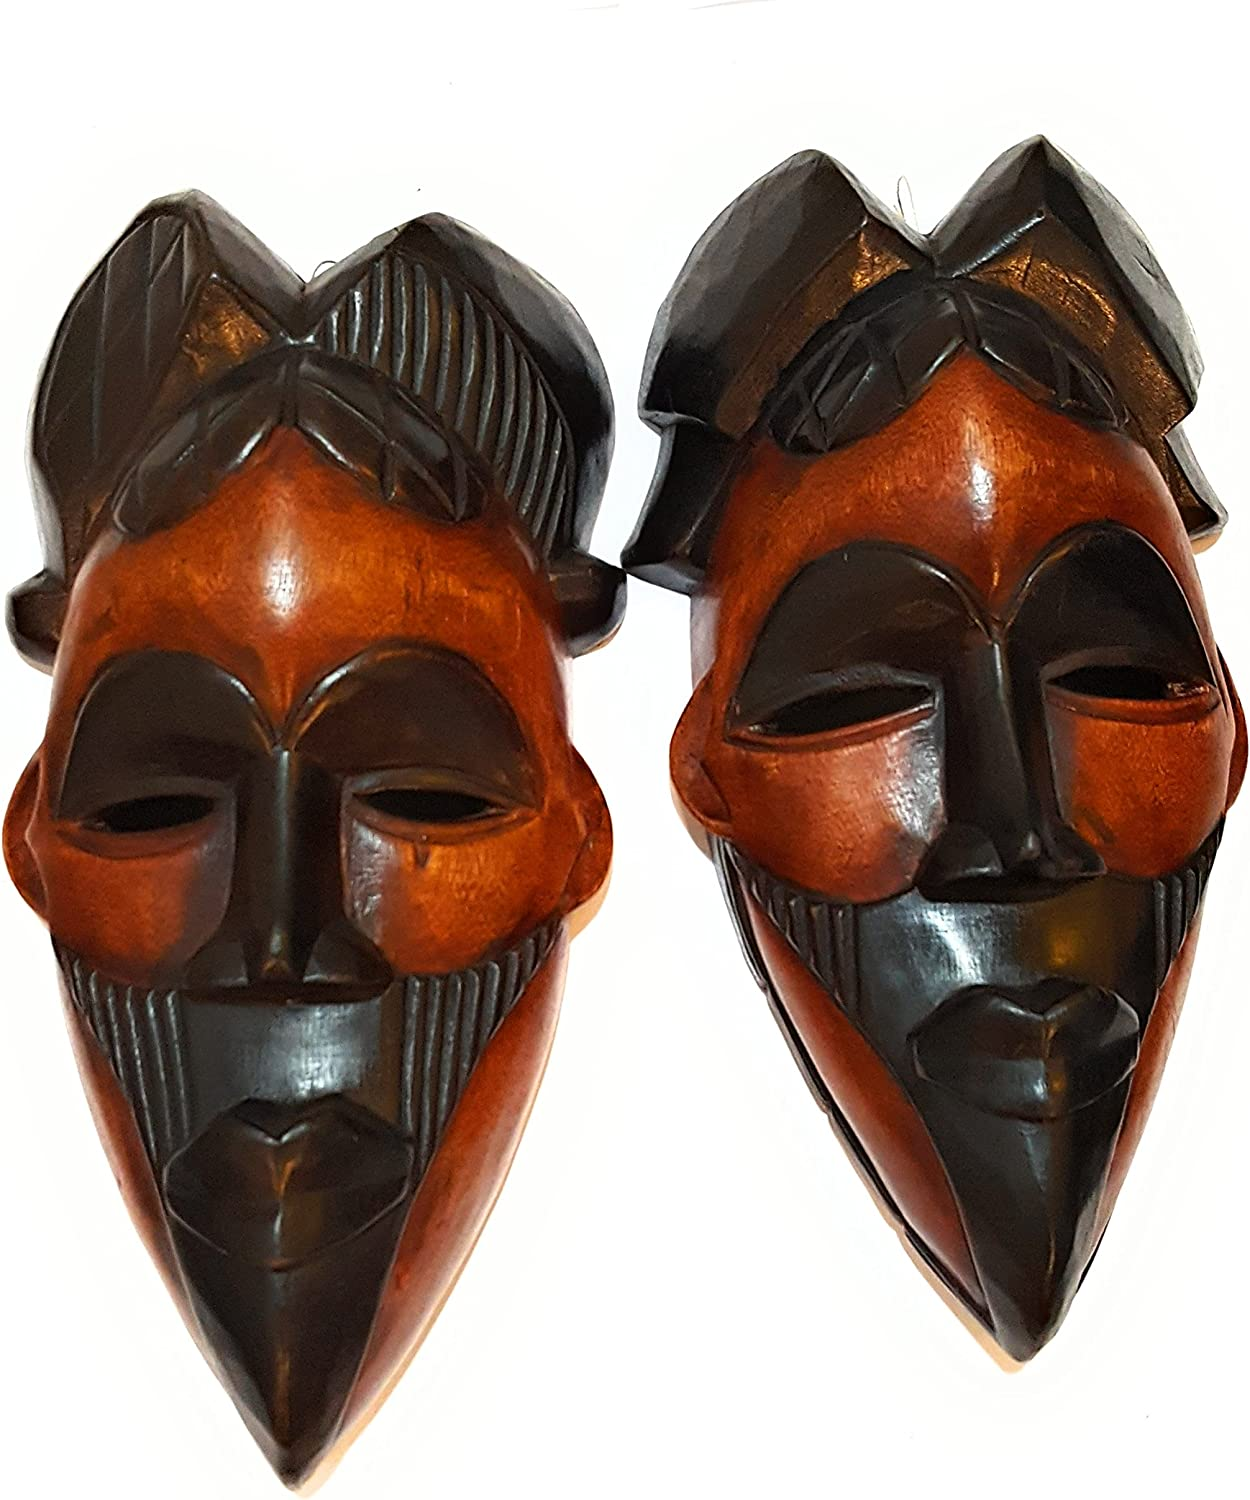 NOVARENA African Art Cameroon Gabon Fang Wall Masks and Sculptures - Africa Home Mask Decor (2 Pc Congo 12 Inch Black & BrownMask)